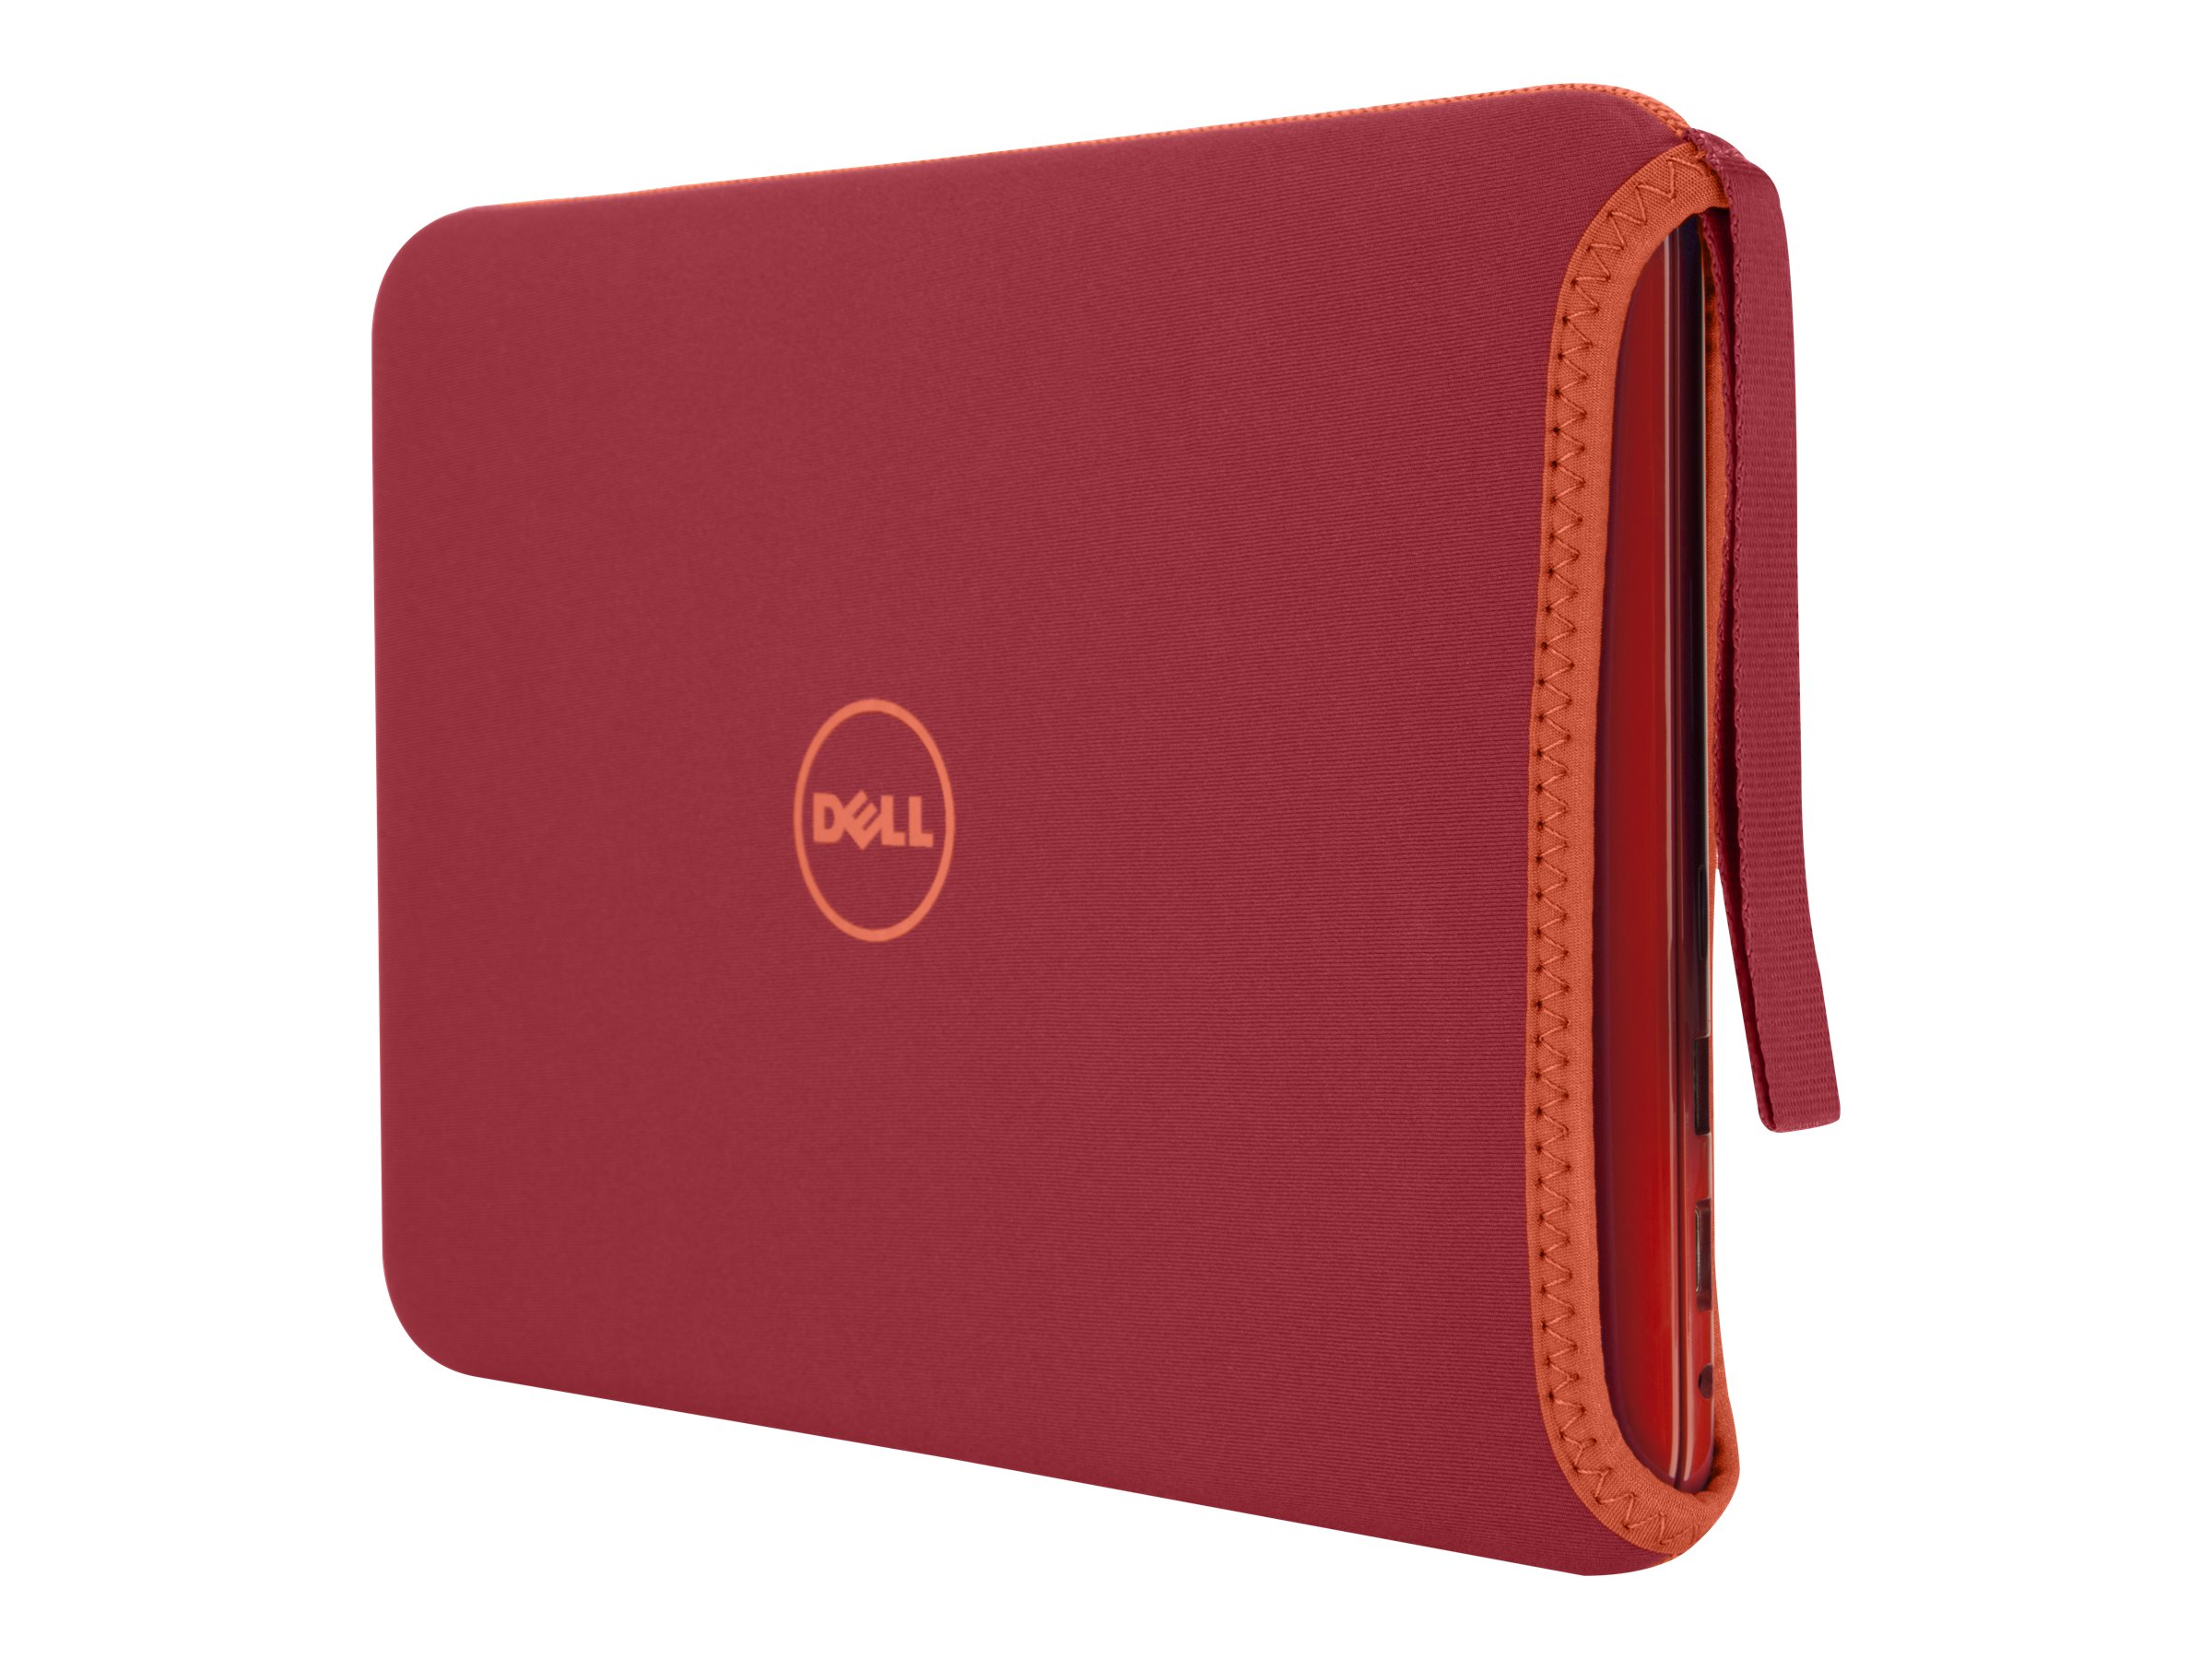 Dell Sleeve (S) notebook sleeve